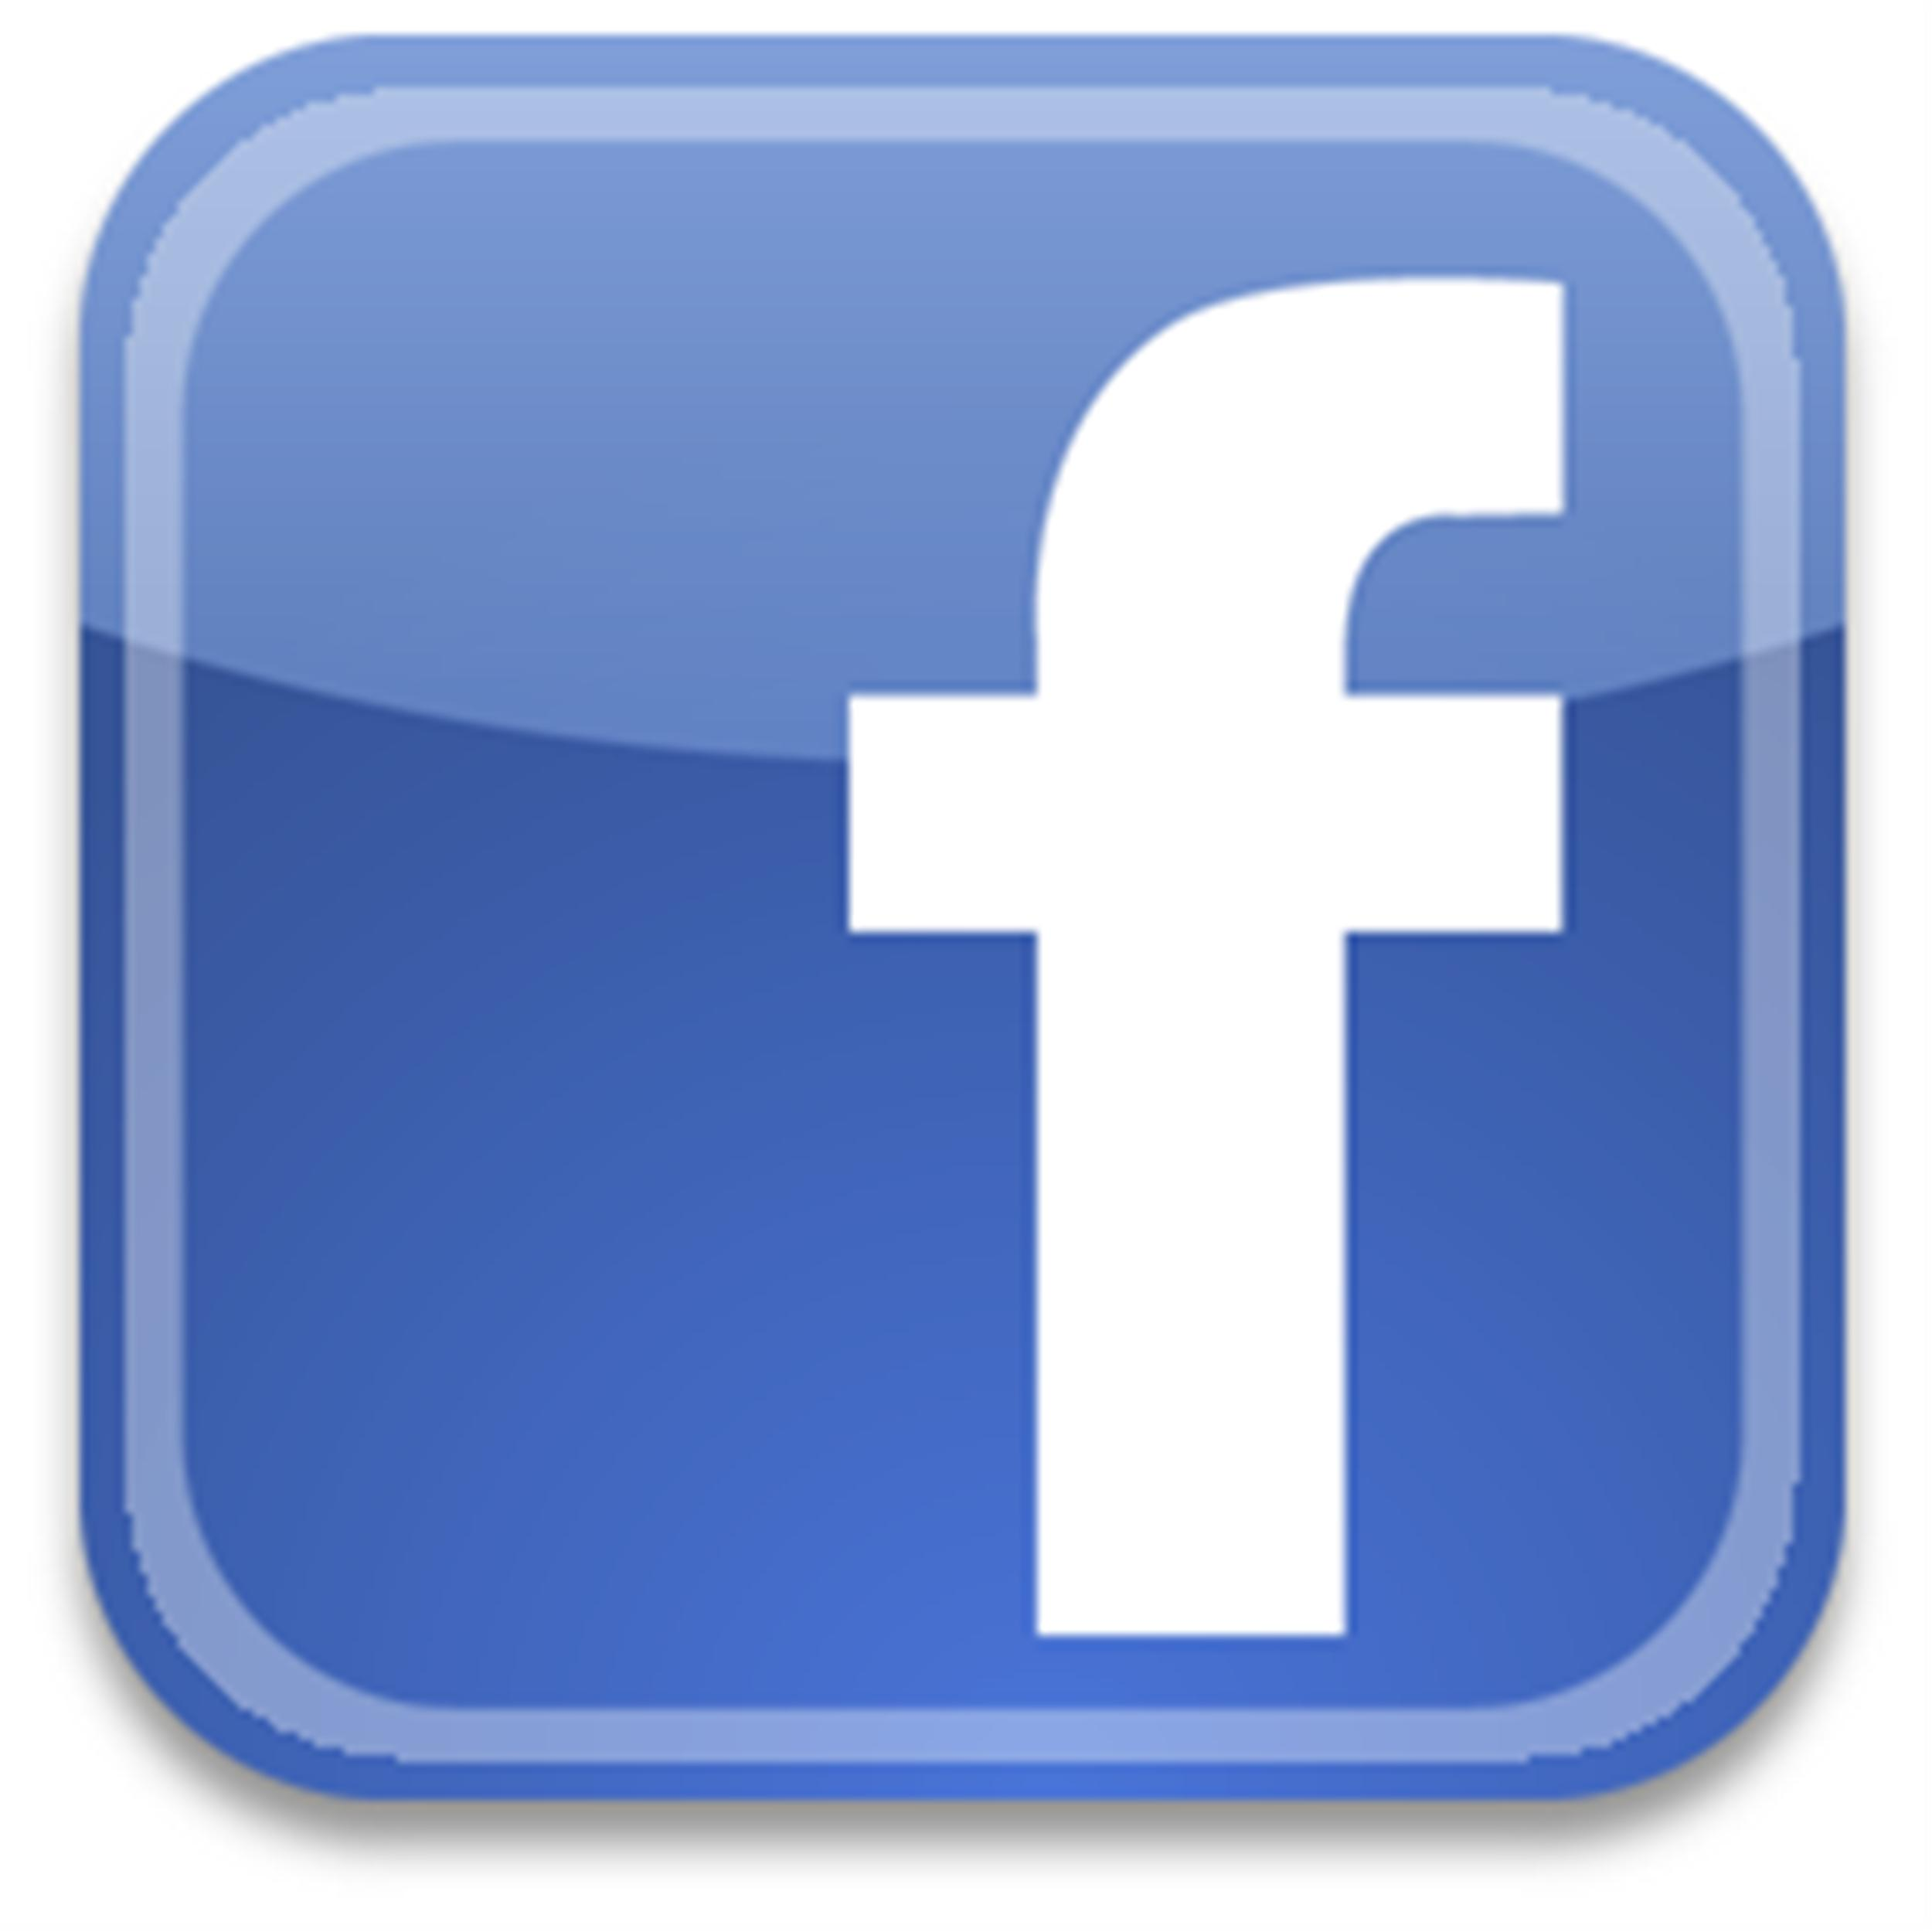 fb-facebook-logo-icon-3